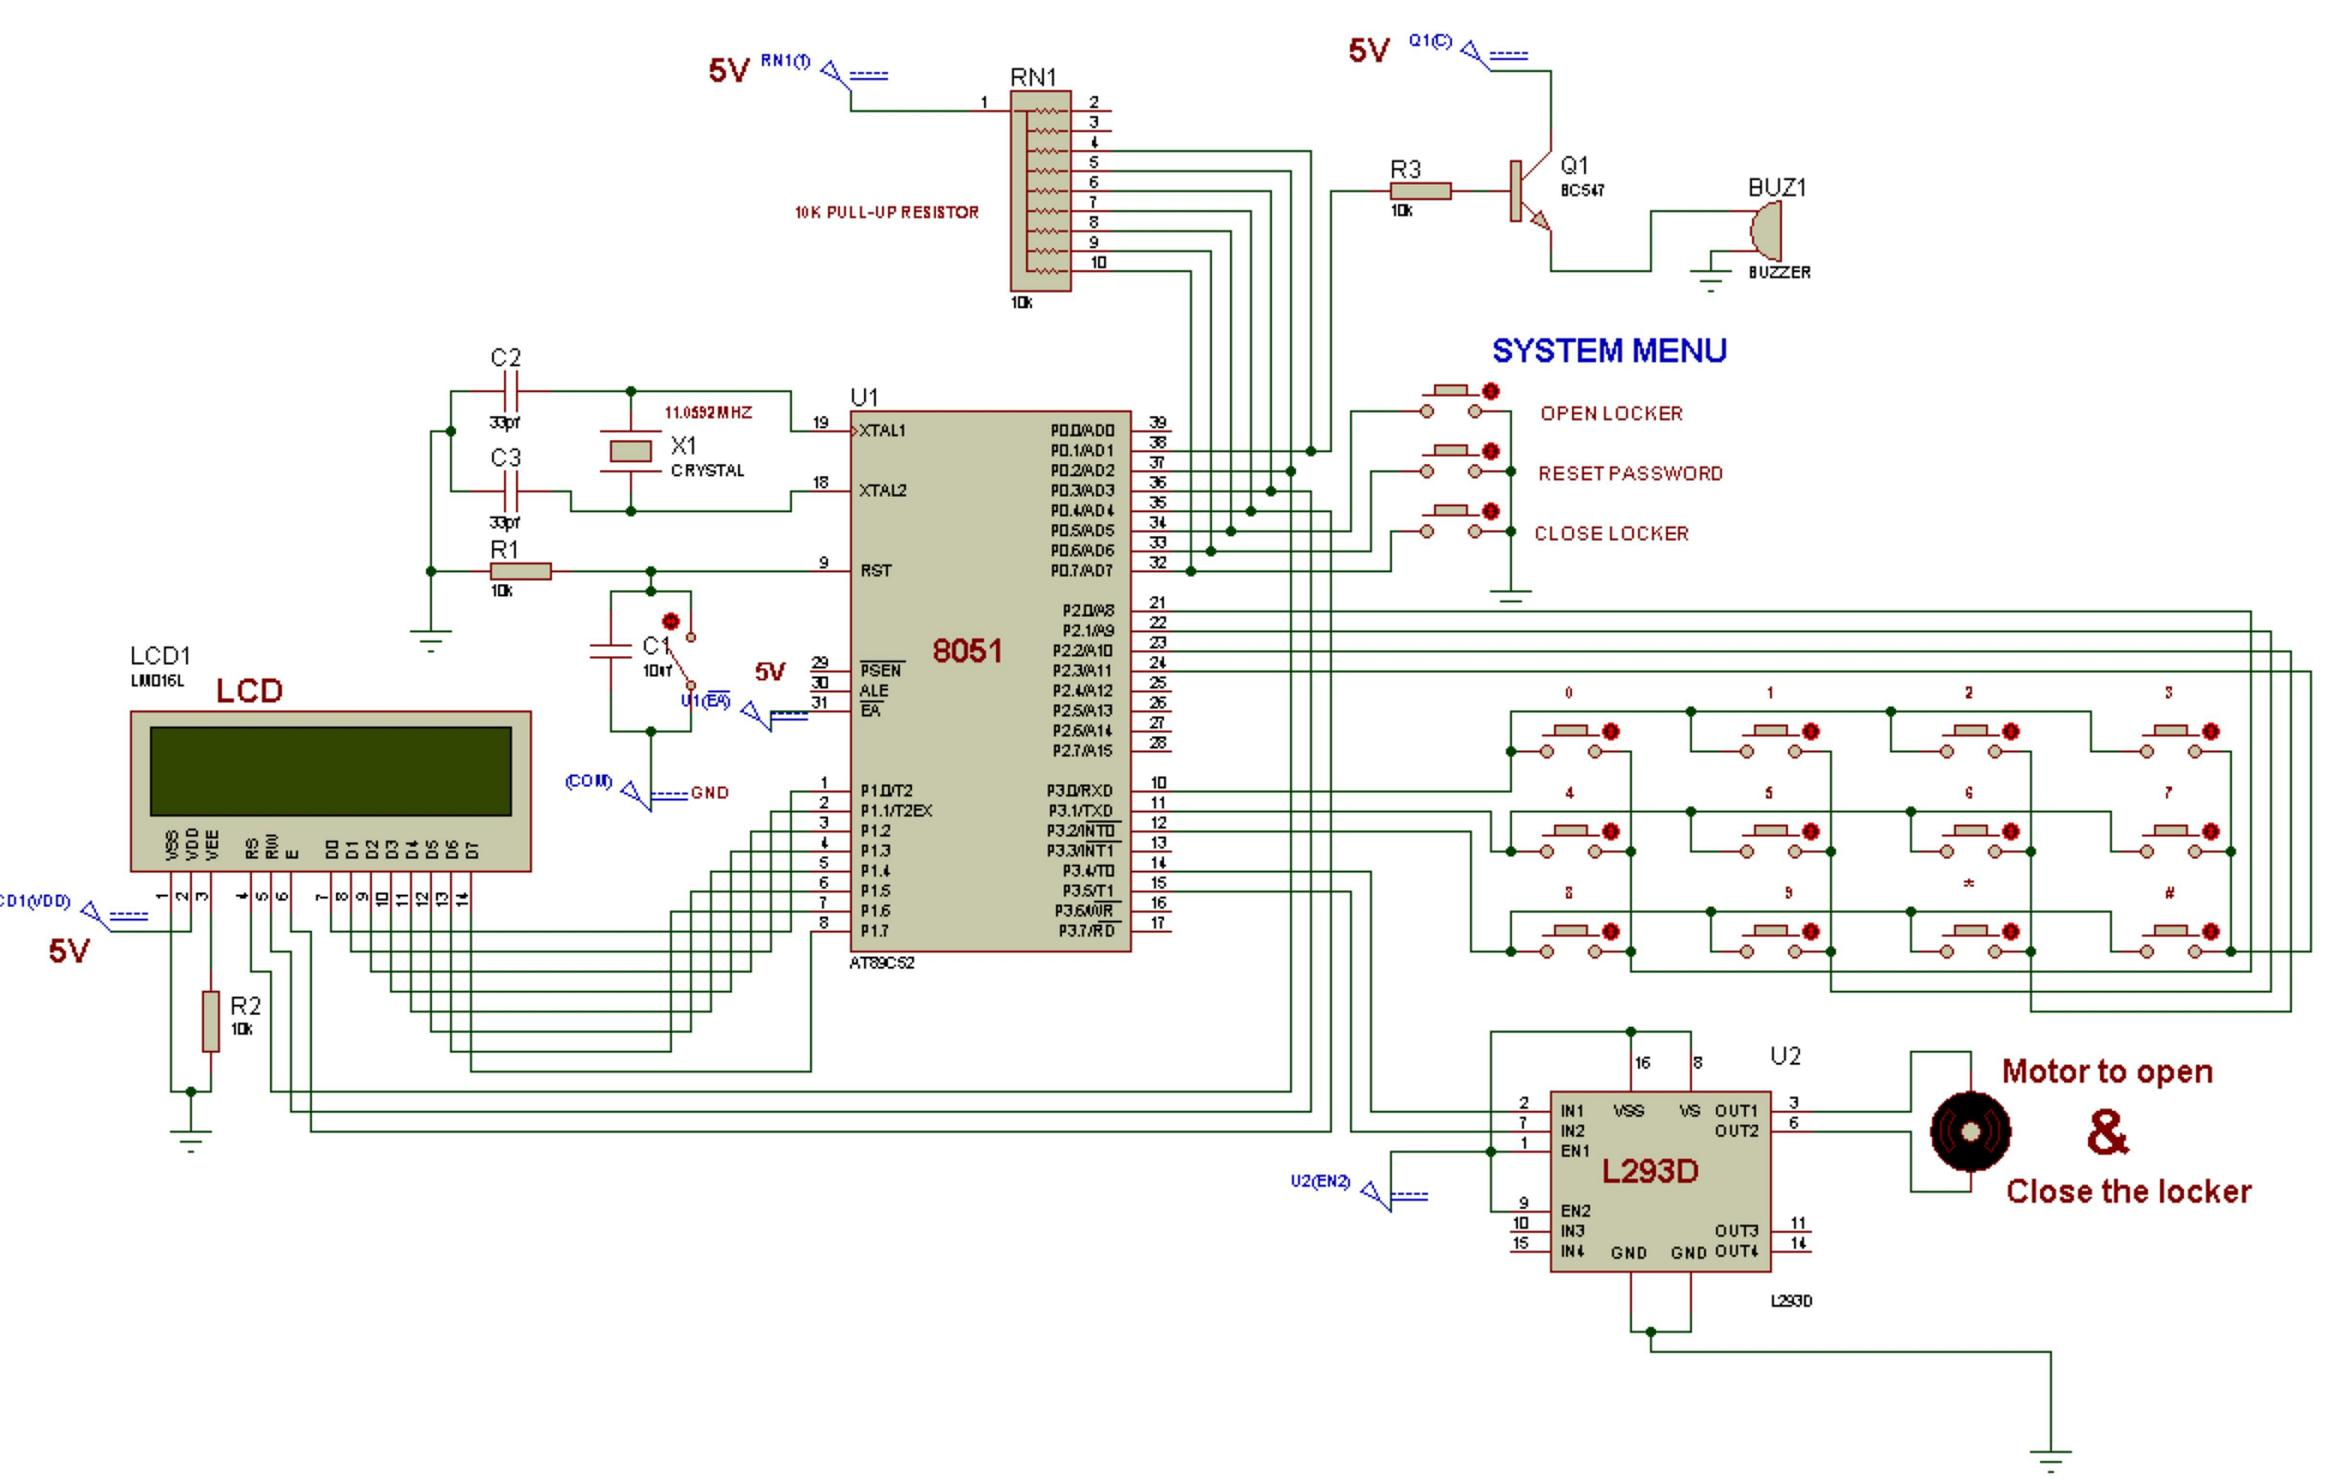 Latest Electronics Mini Projects For Engineering Students Simple Rf Remote Control Circuit Without Microcontroller Homemade 8051 Based Electronic Locker System